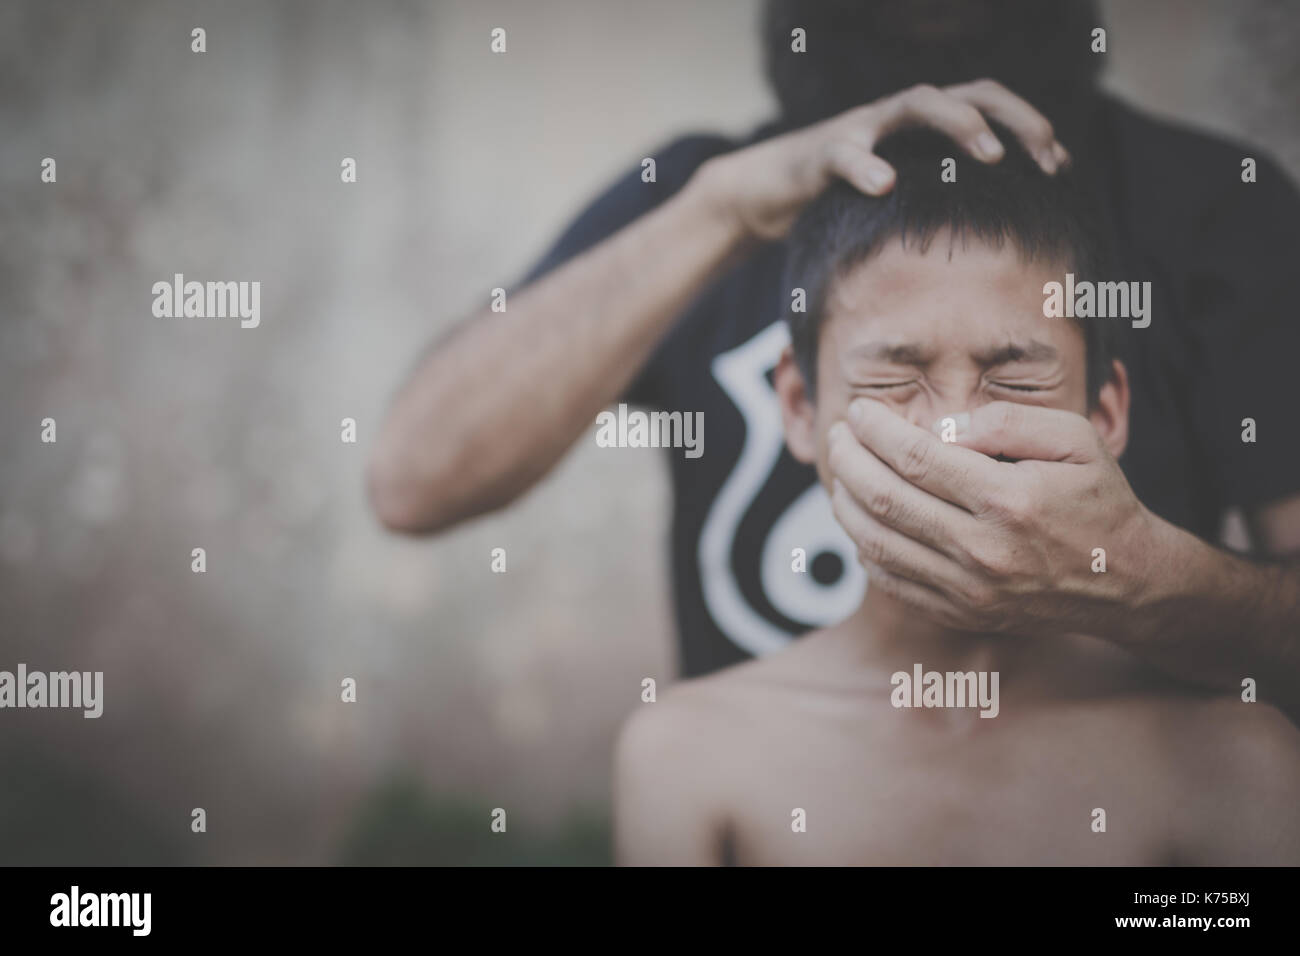 Human trafficking, Stop abusing child violence, Human rights Day concept. - Stock Image